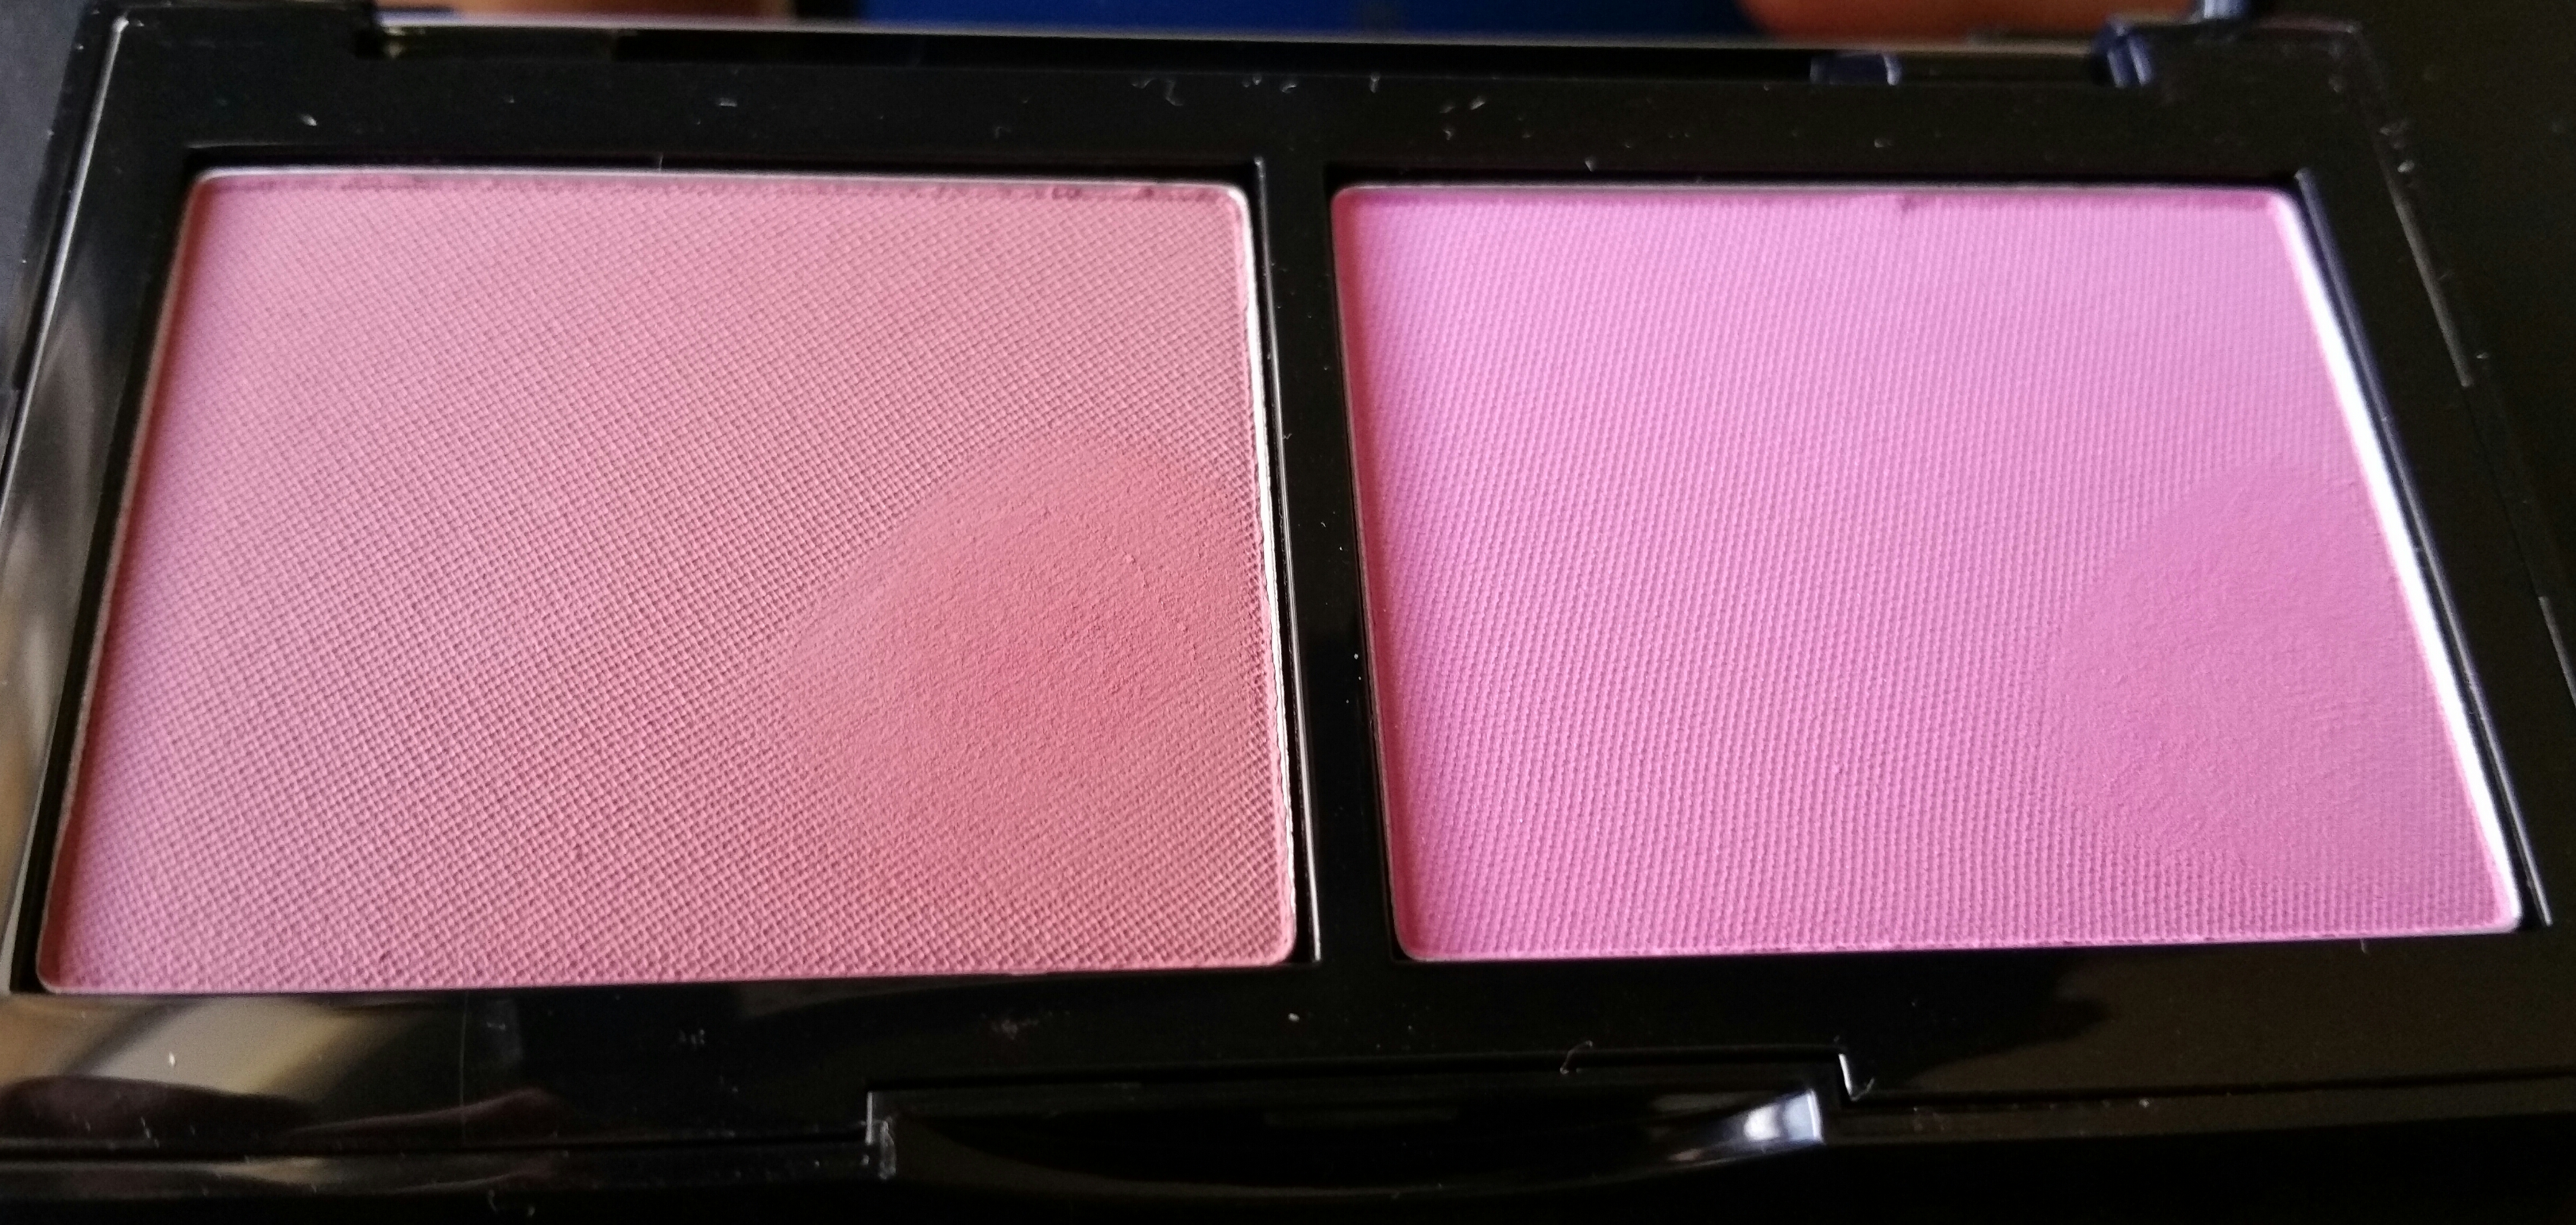 Bobbi Brown Blush Duos For Spring 2016 Review Photos Swatches Of Sand Pink Pale Pink Blush Duo Cosmetichaulic Com